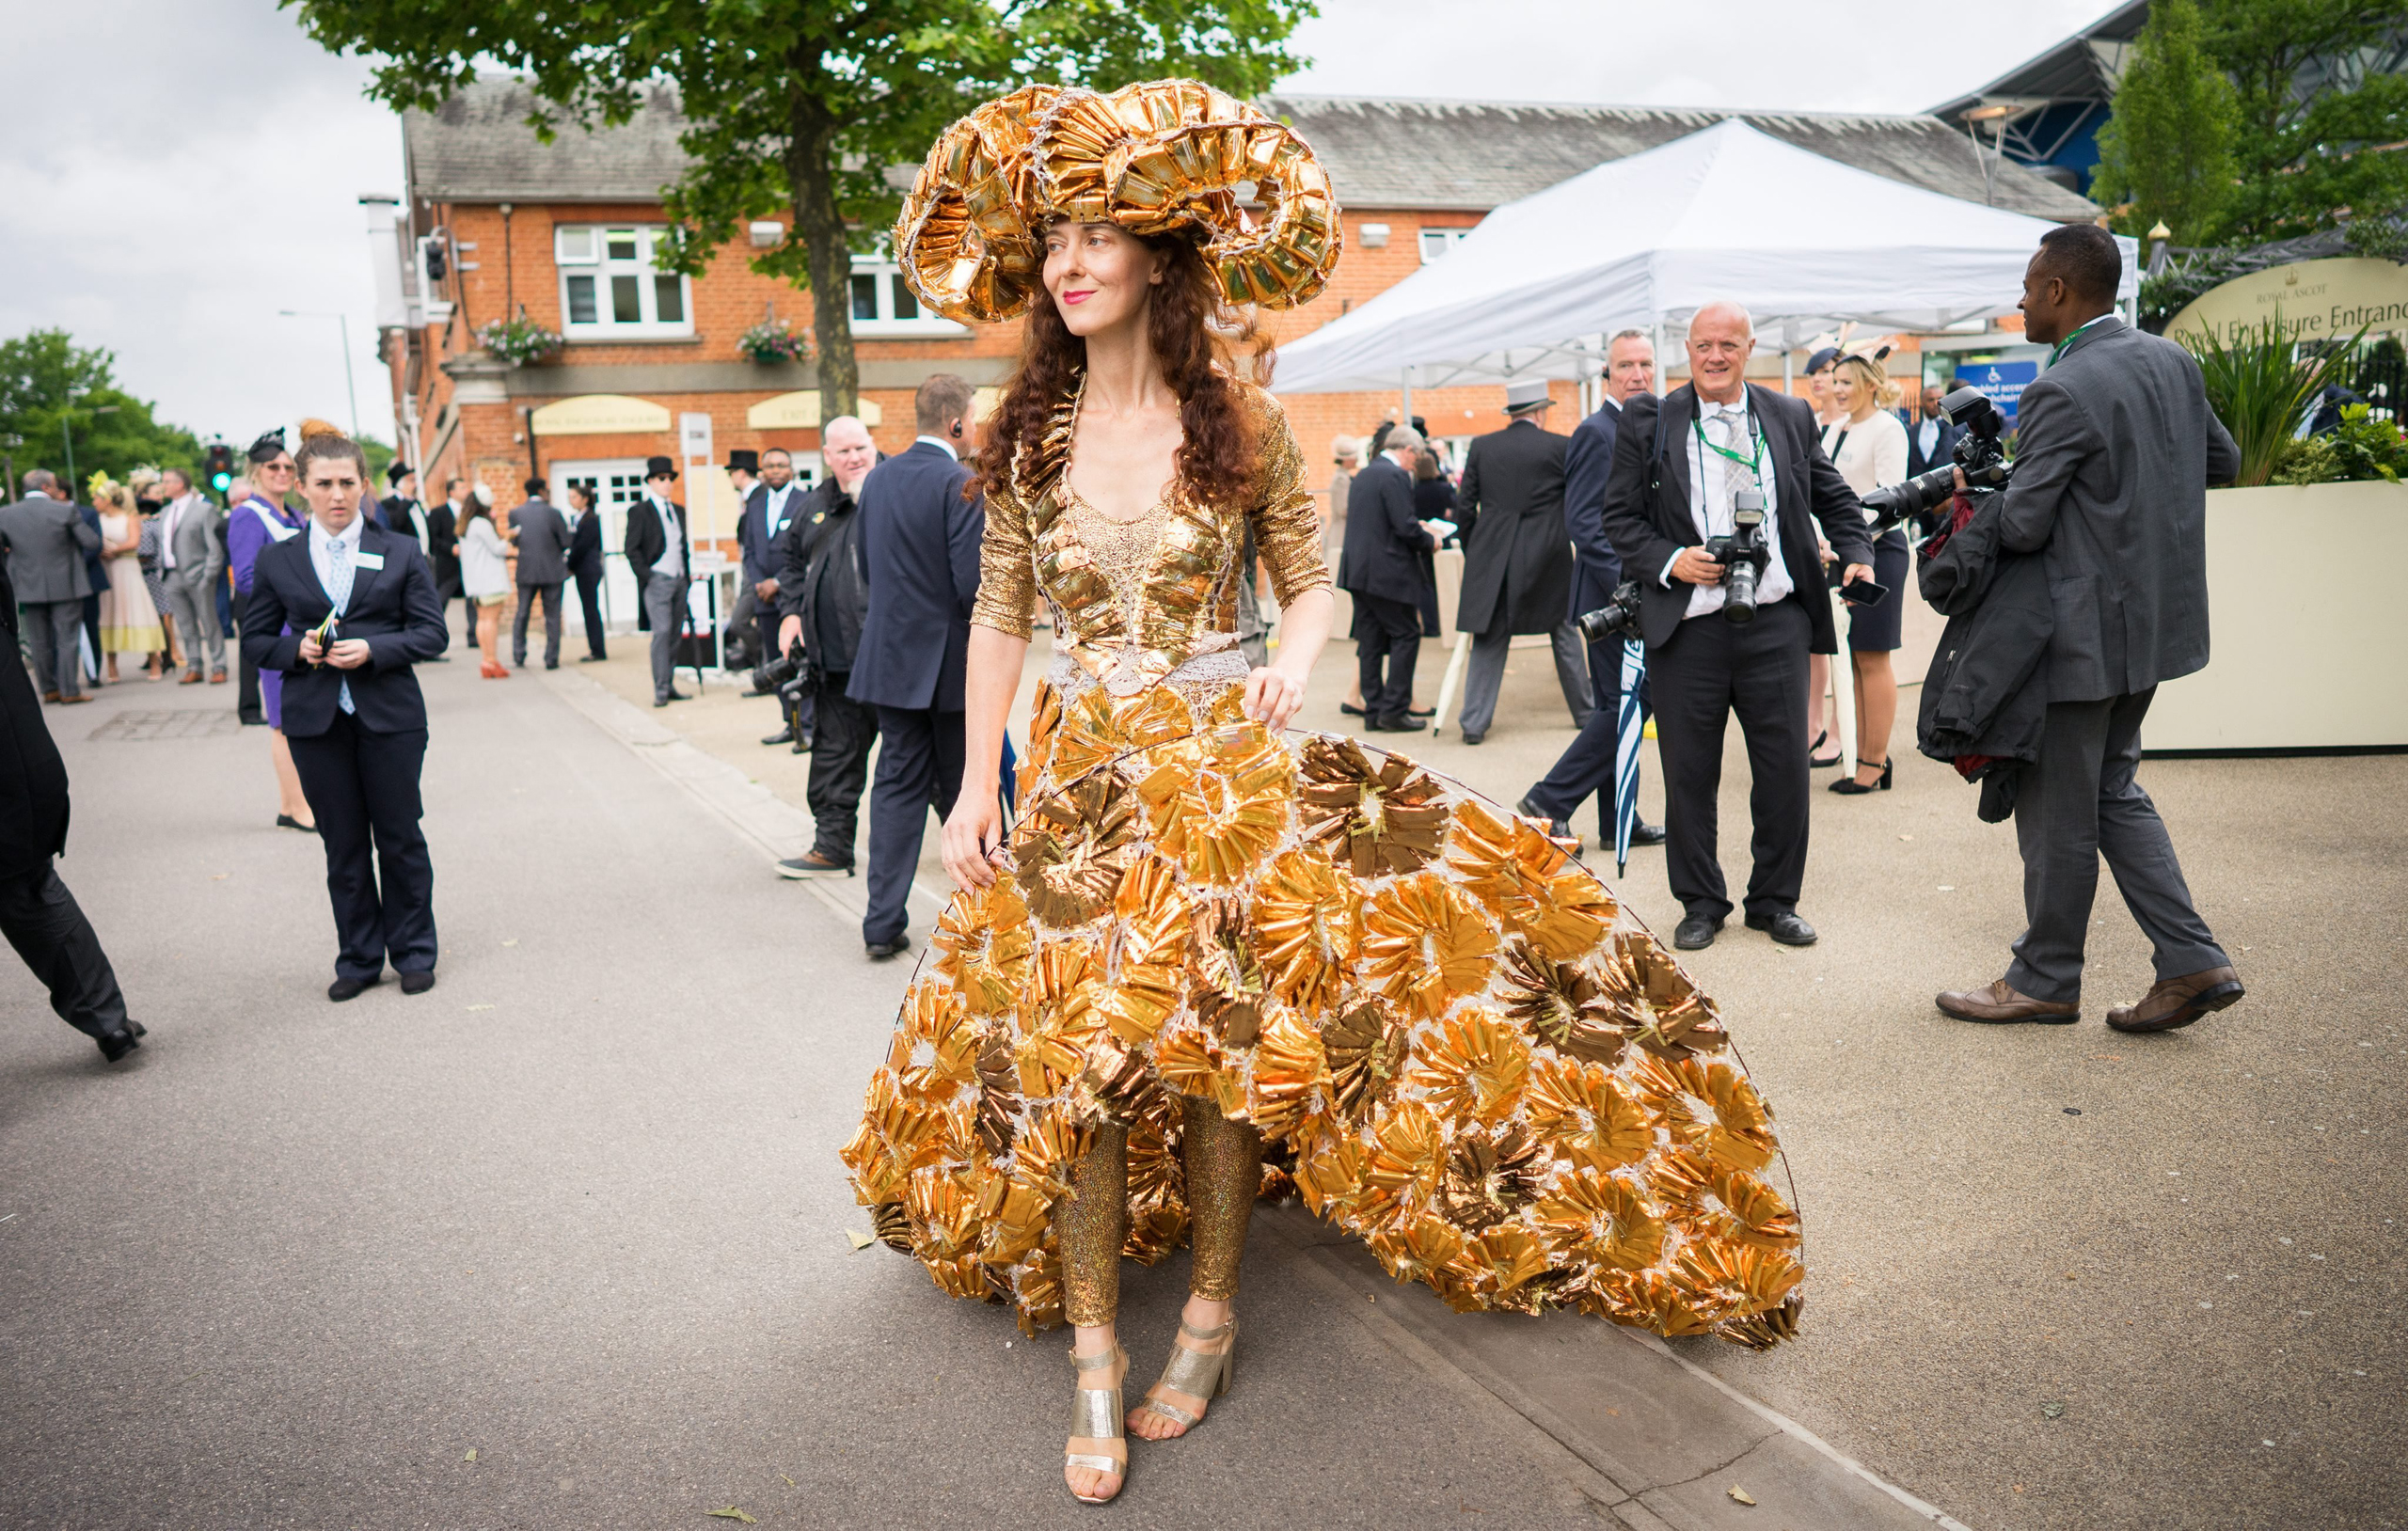 Race-goers arrive on Ladies Day at the Royal Ascot horse race meeting in Ascot, U.K., on June 16, 2016.